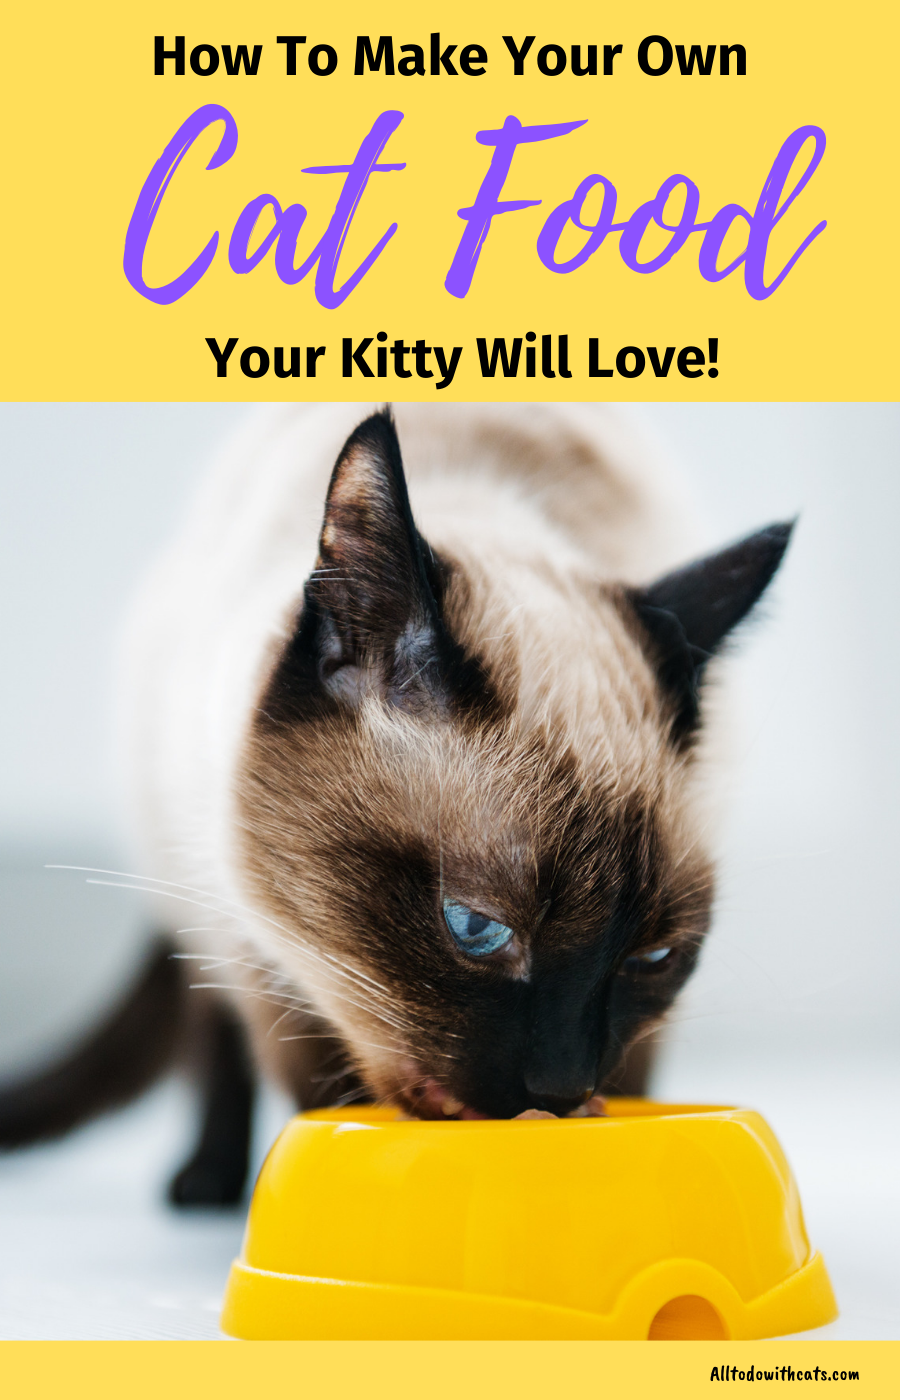 How To Make Your Own Cat Food For A Healthy Kitty! Cat